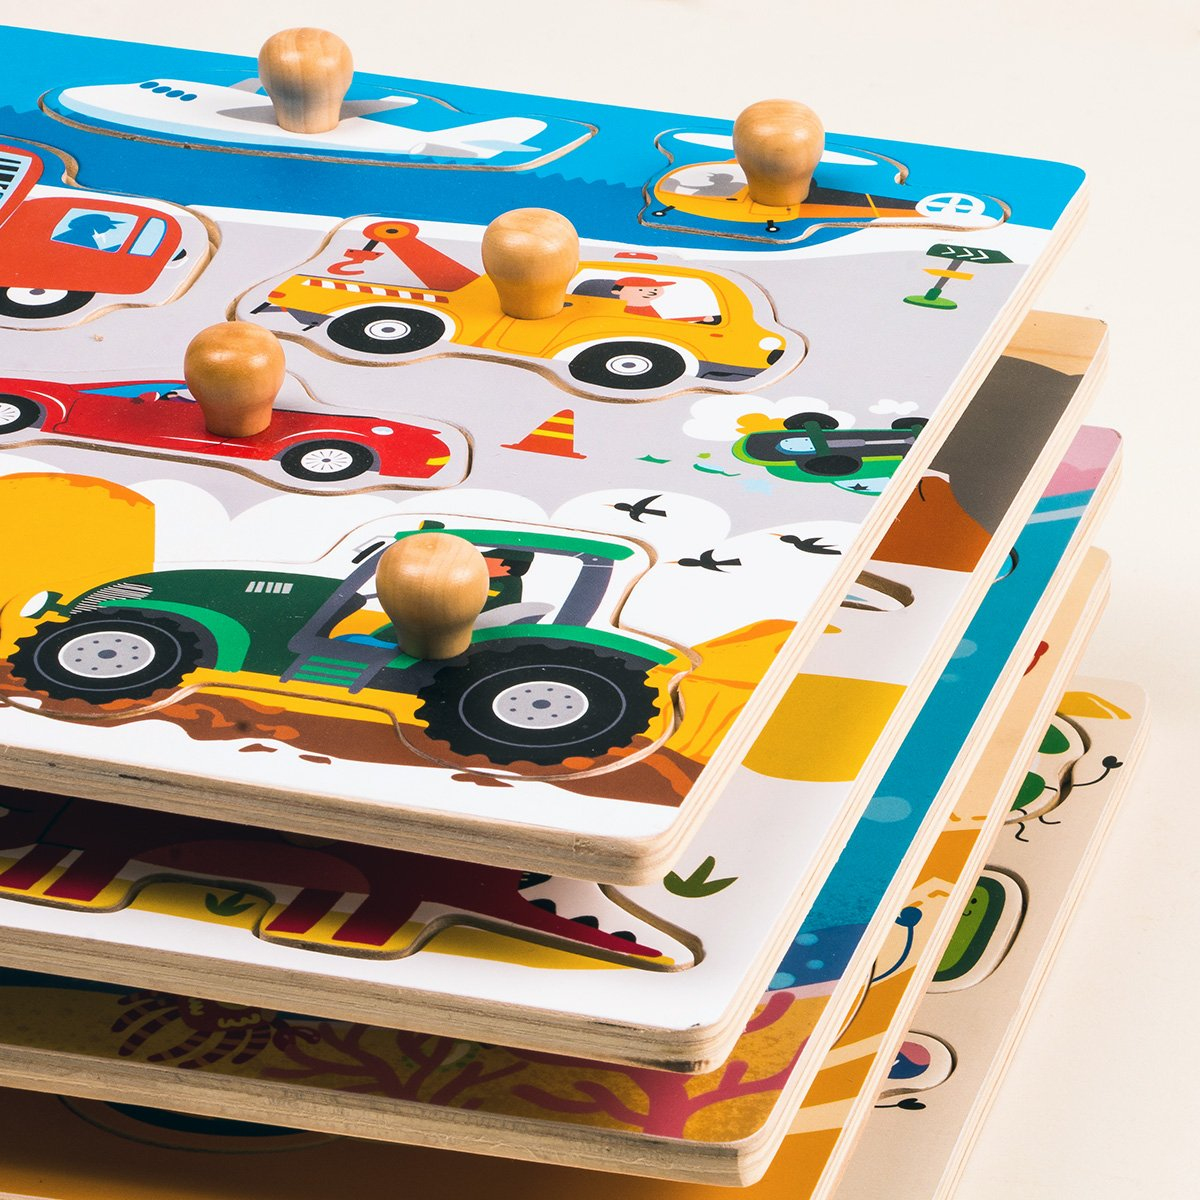 Robud Wooden peg Puzzle 8 Pieces-Jigsaw Puzzle Boards for Baby Kids-Good for Children Toddler Learning /& Education-Colorful /& Funny Gifts-Cars and Airplane